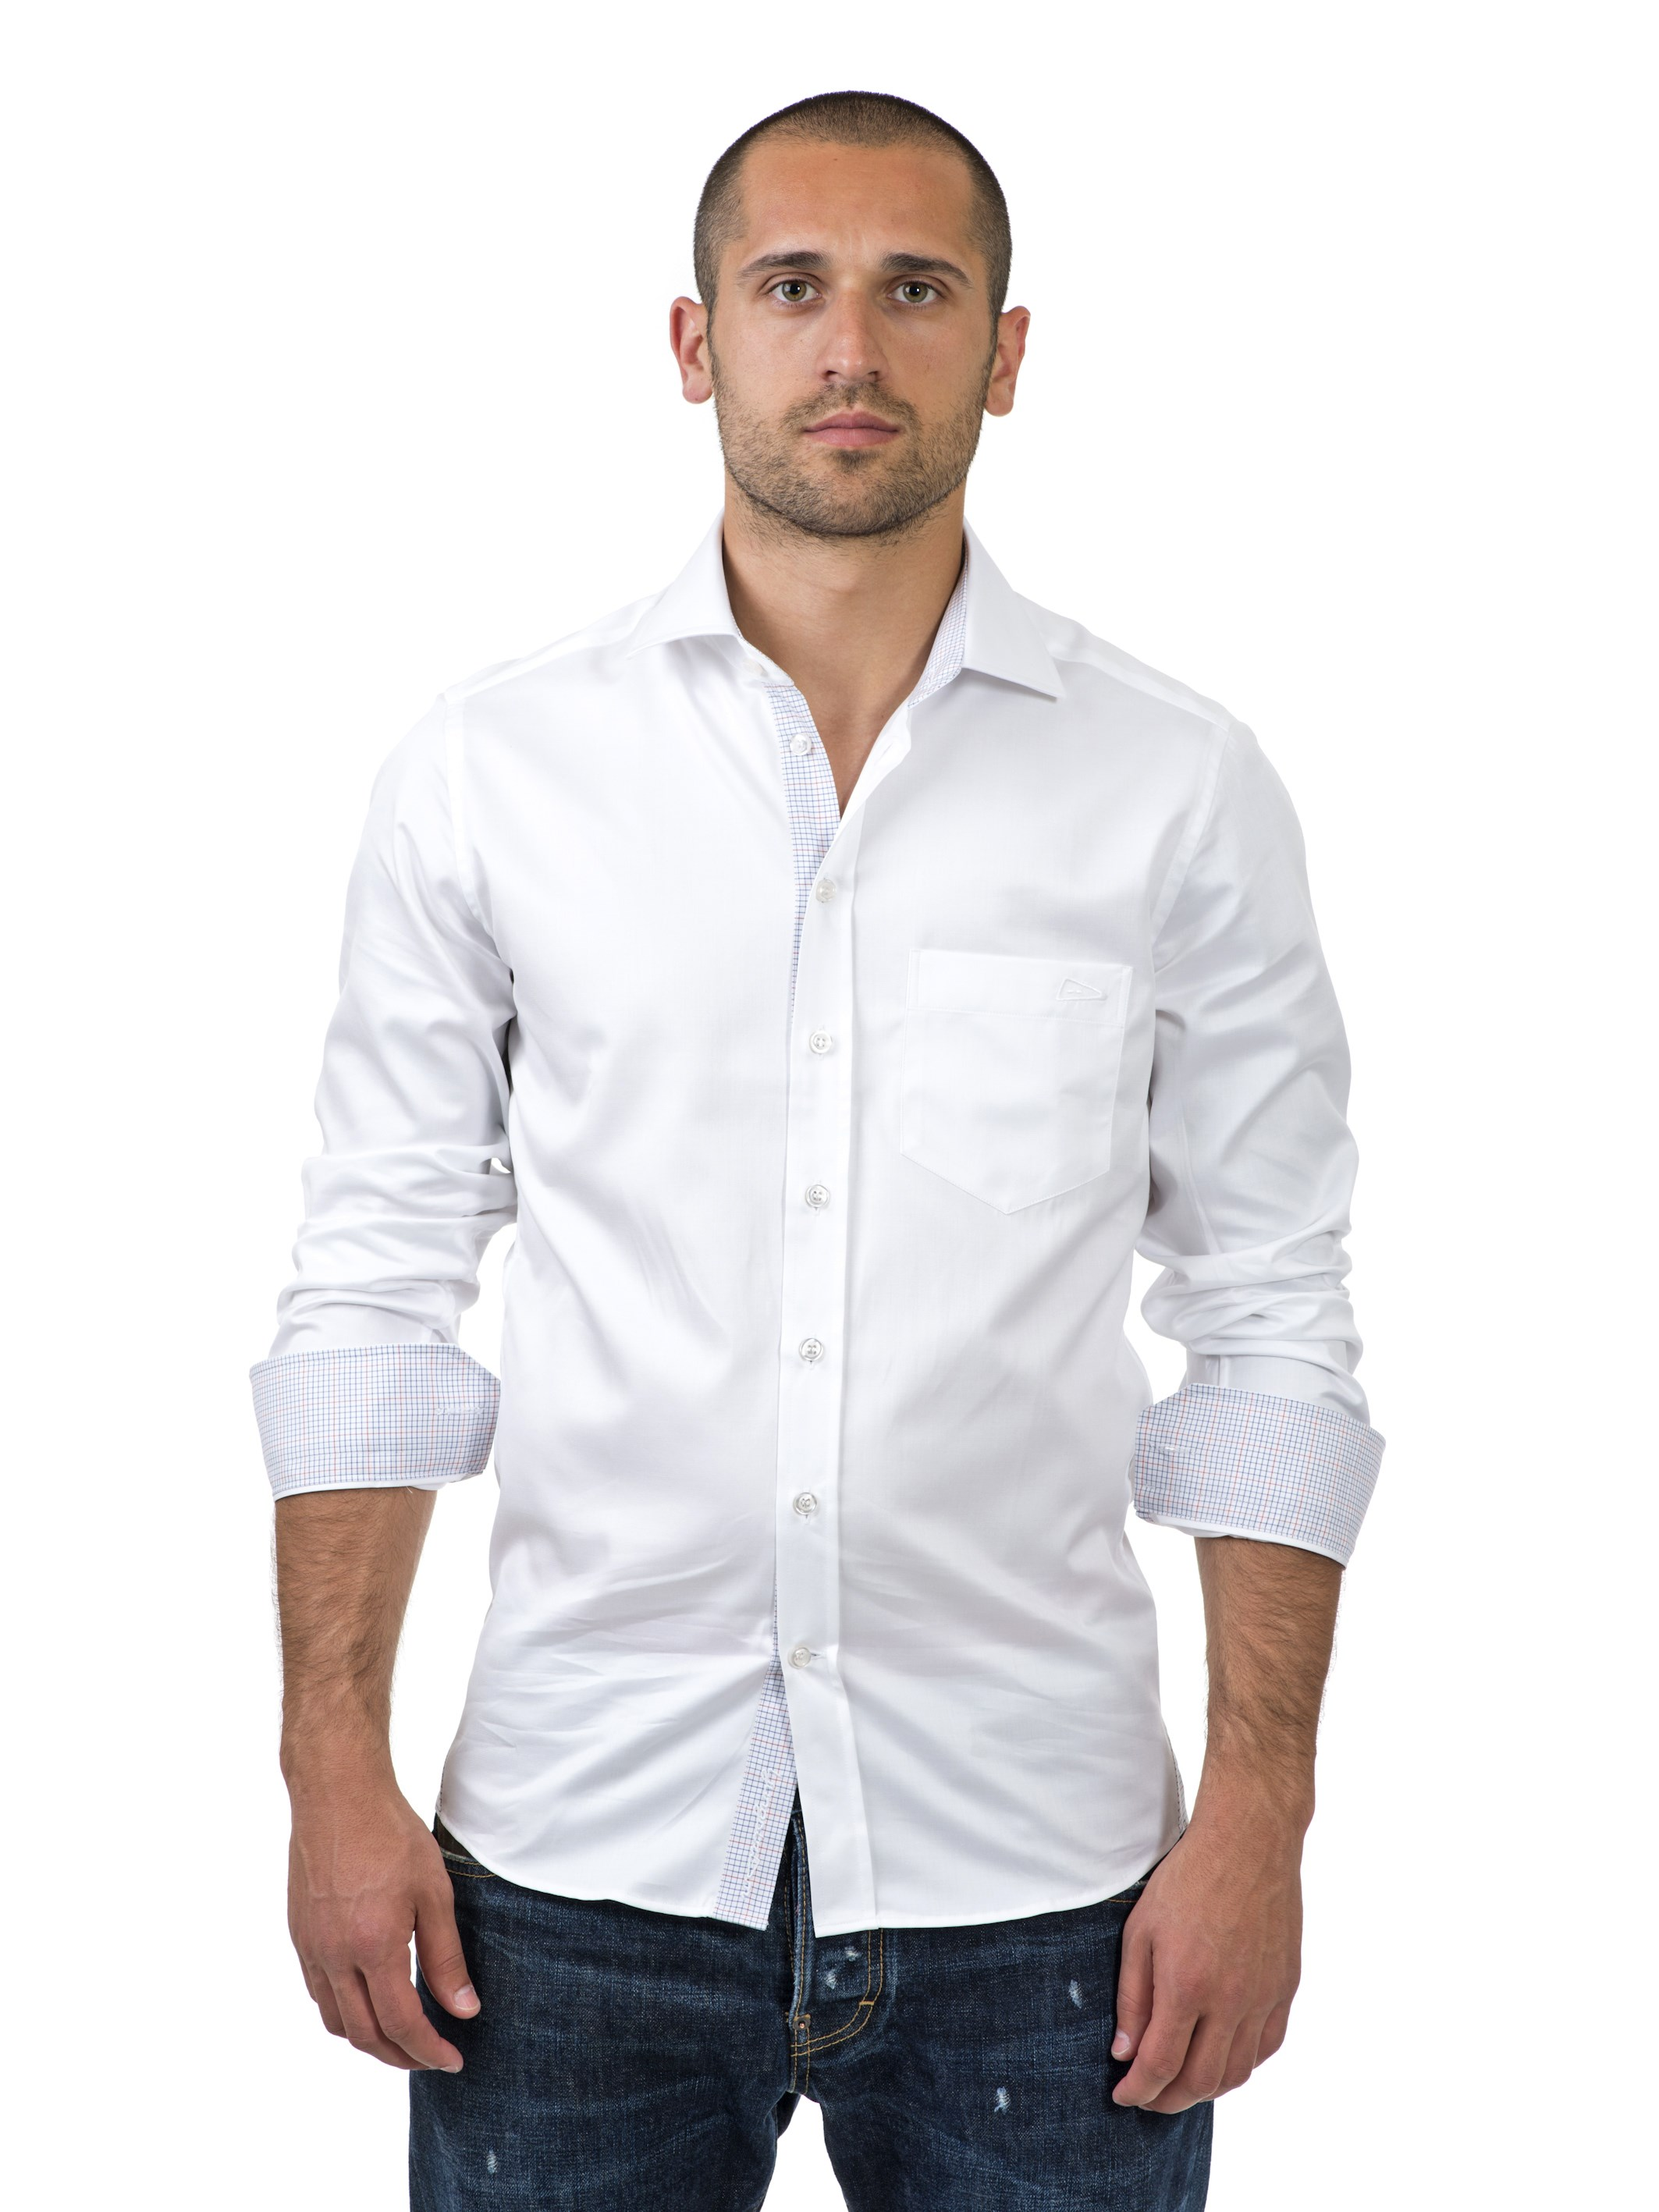 Shirt White Professional S